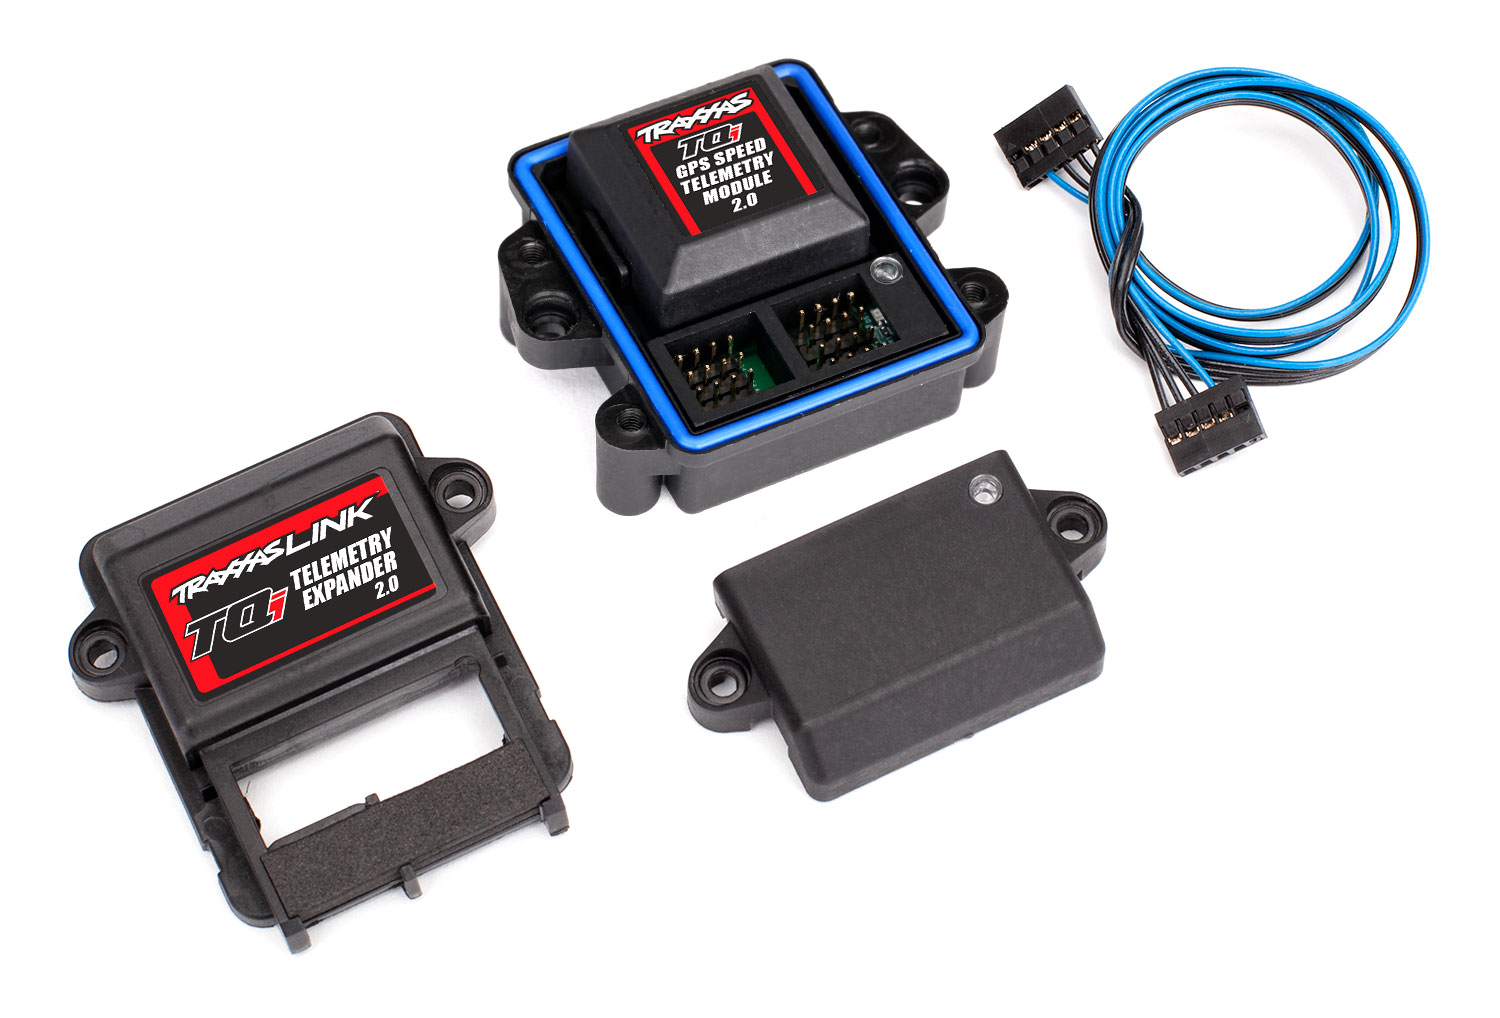 Telemetry expander 2 0 and GPS module 2 0, TQi radio system | Traxxas